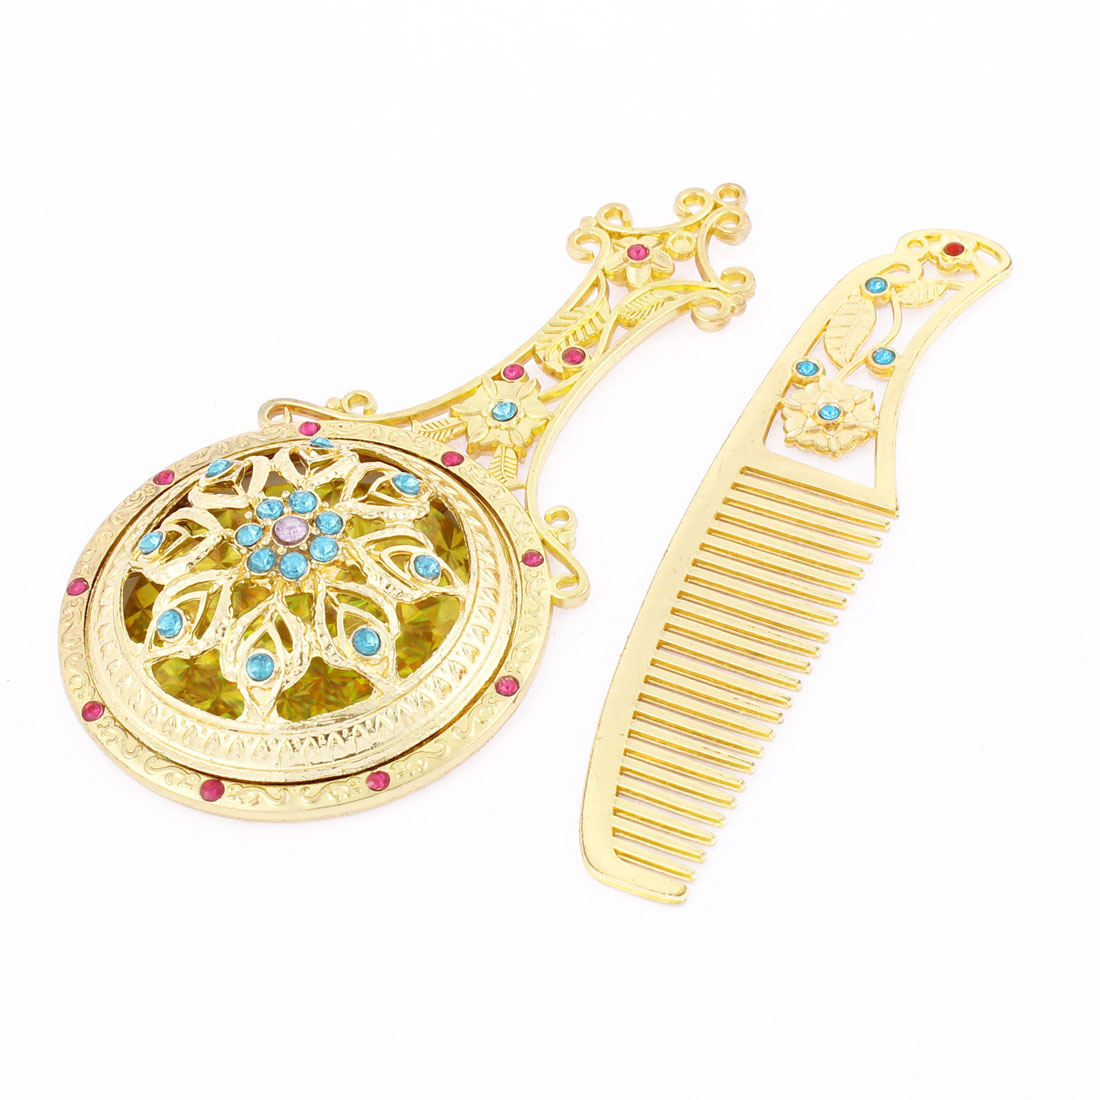 Flower Pattern Cosmetic Wedding Faux Rhinestone Decor Handheld Makeup Compact Mirror Comb Set Gold Tone